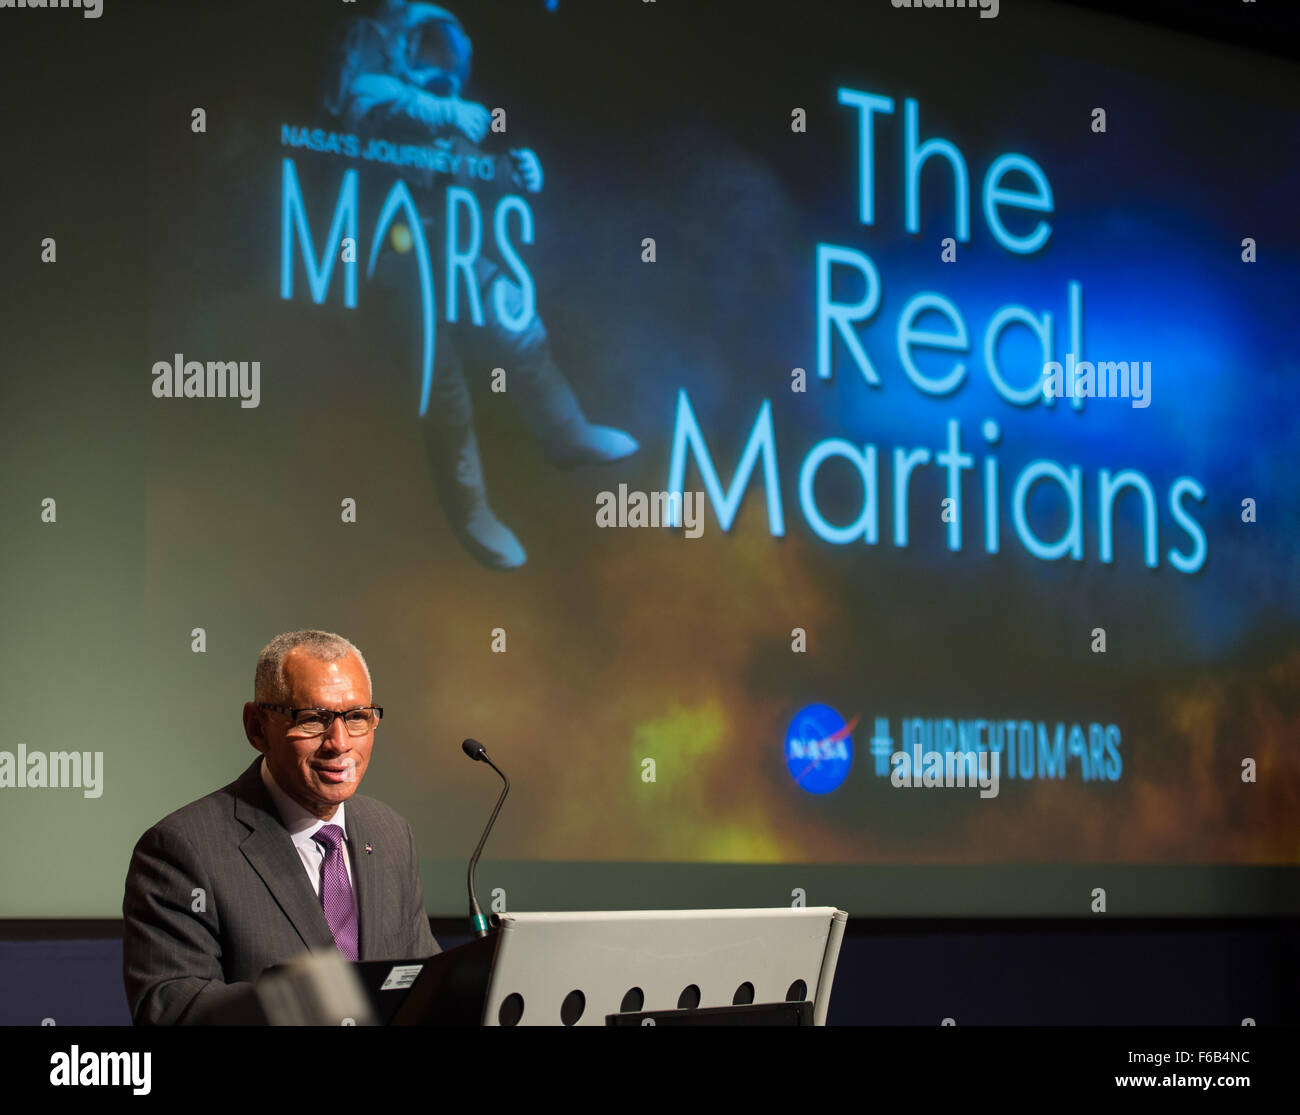 NASA Administrator Charles Bolden acknowledges NASA's 'Real Martians' - NASA staff that contribute to - Stock Image